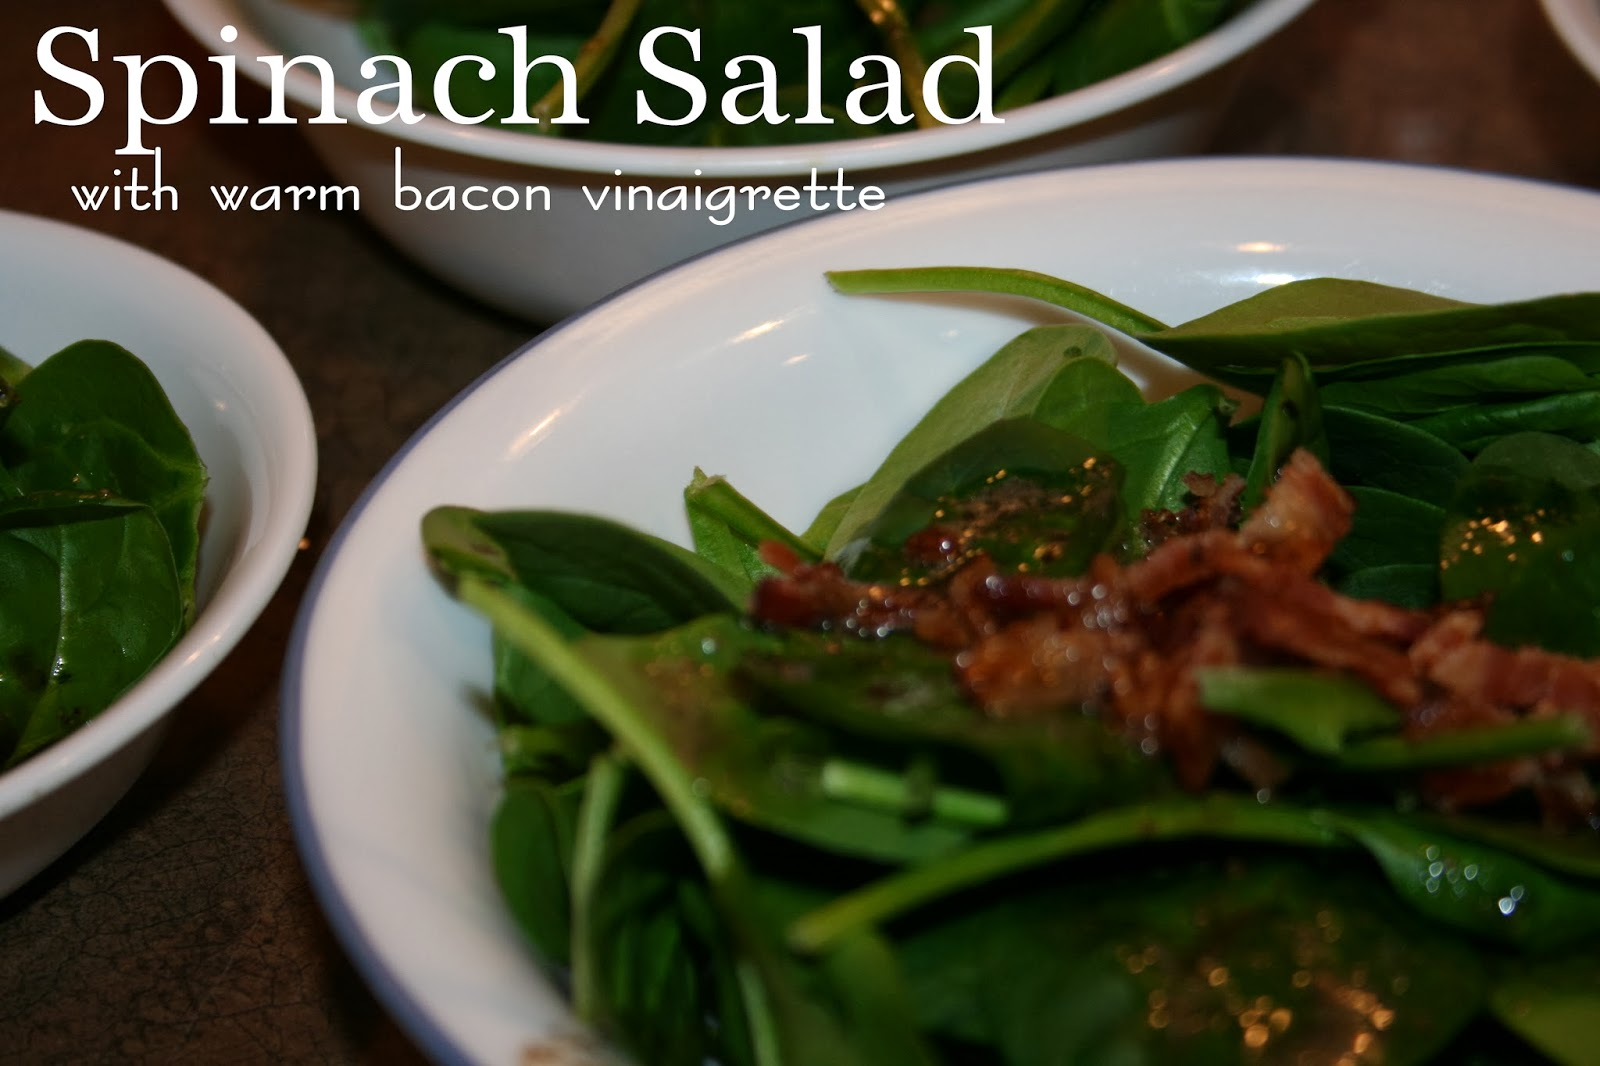 JOY Unspeakable: Spinach Salad {with warm bacon vinaigrette}